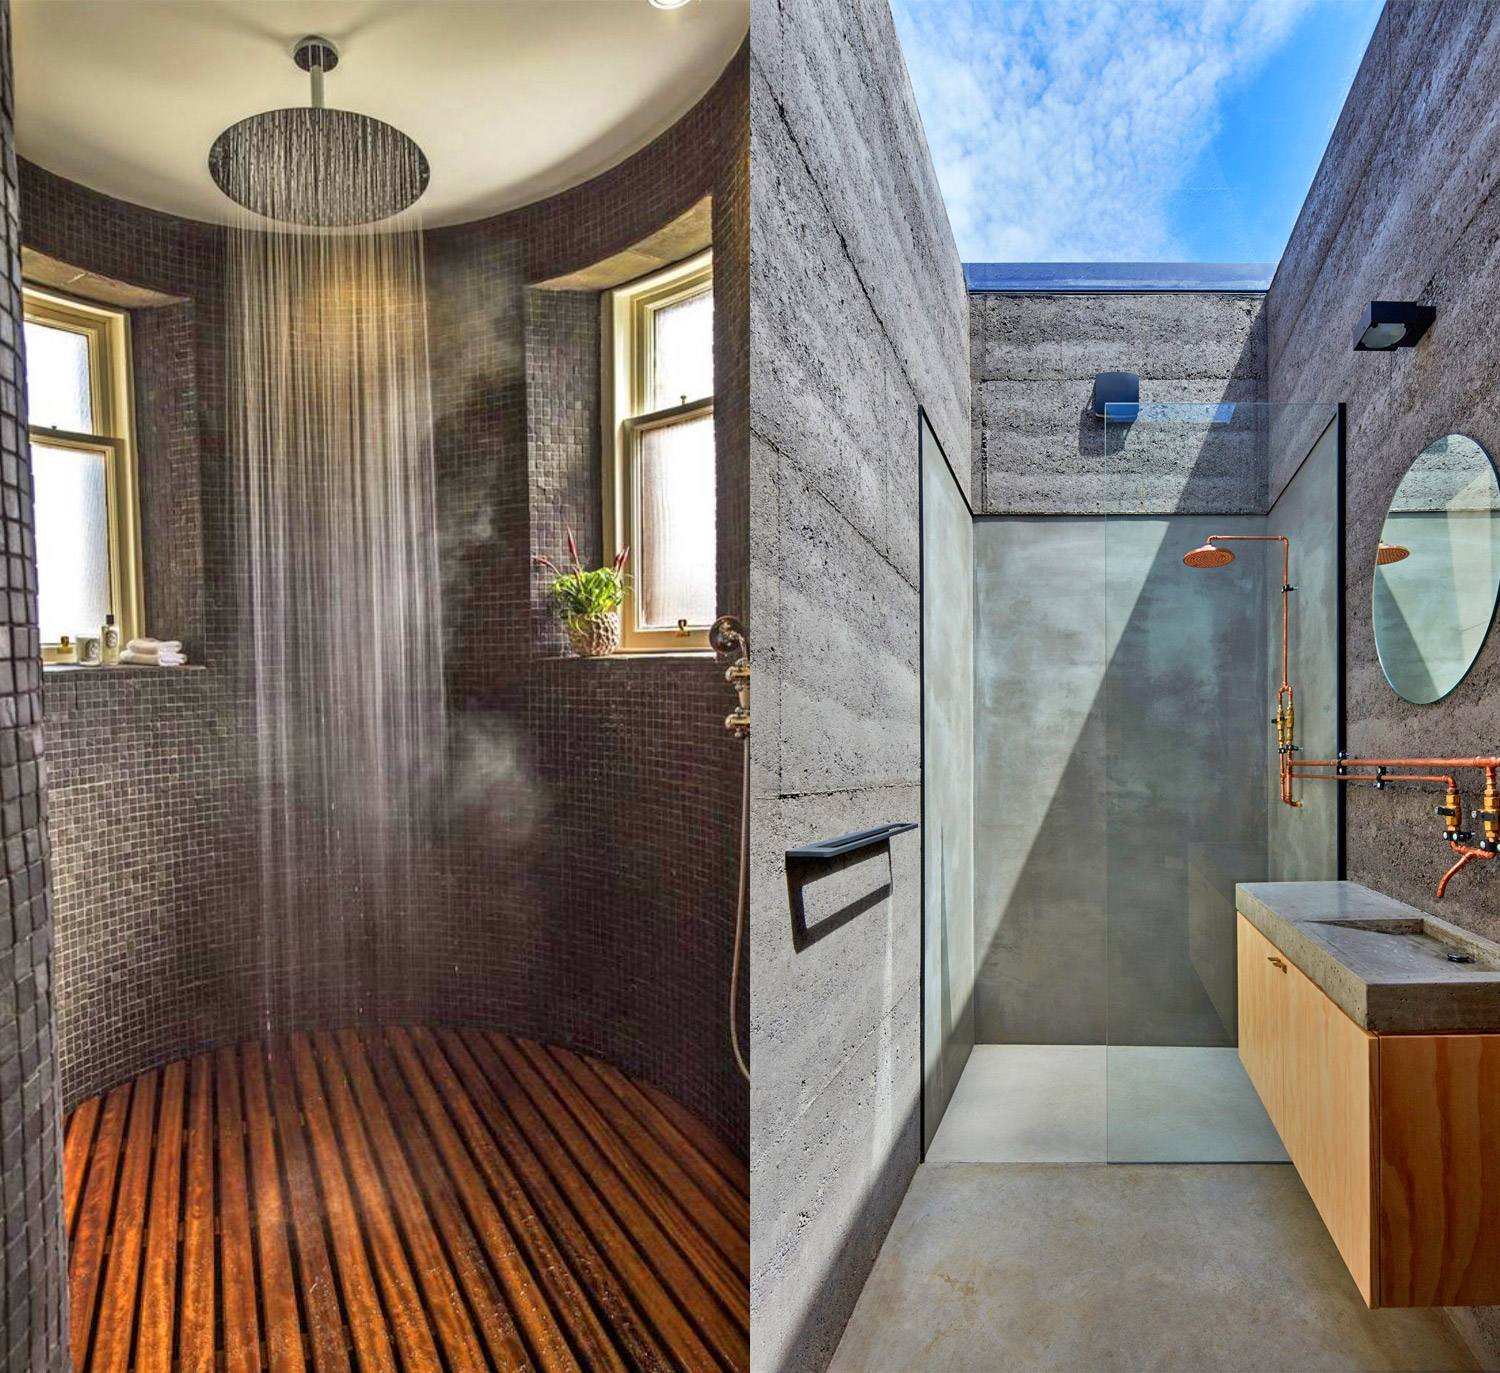 32 Incredible Modern Luxury Shower Designs For 2020 That'll Surely Make You Envious